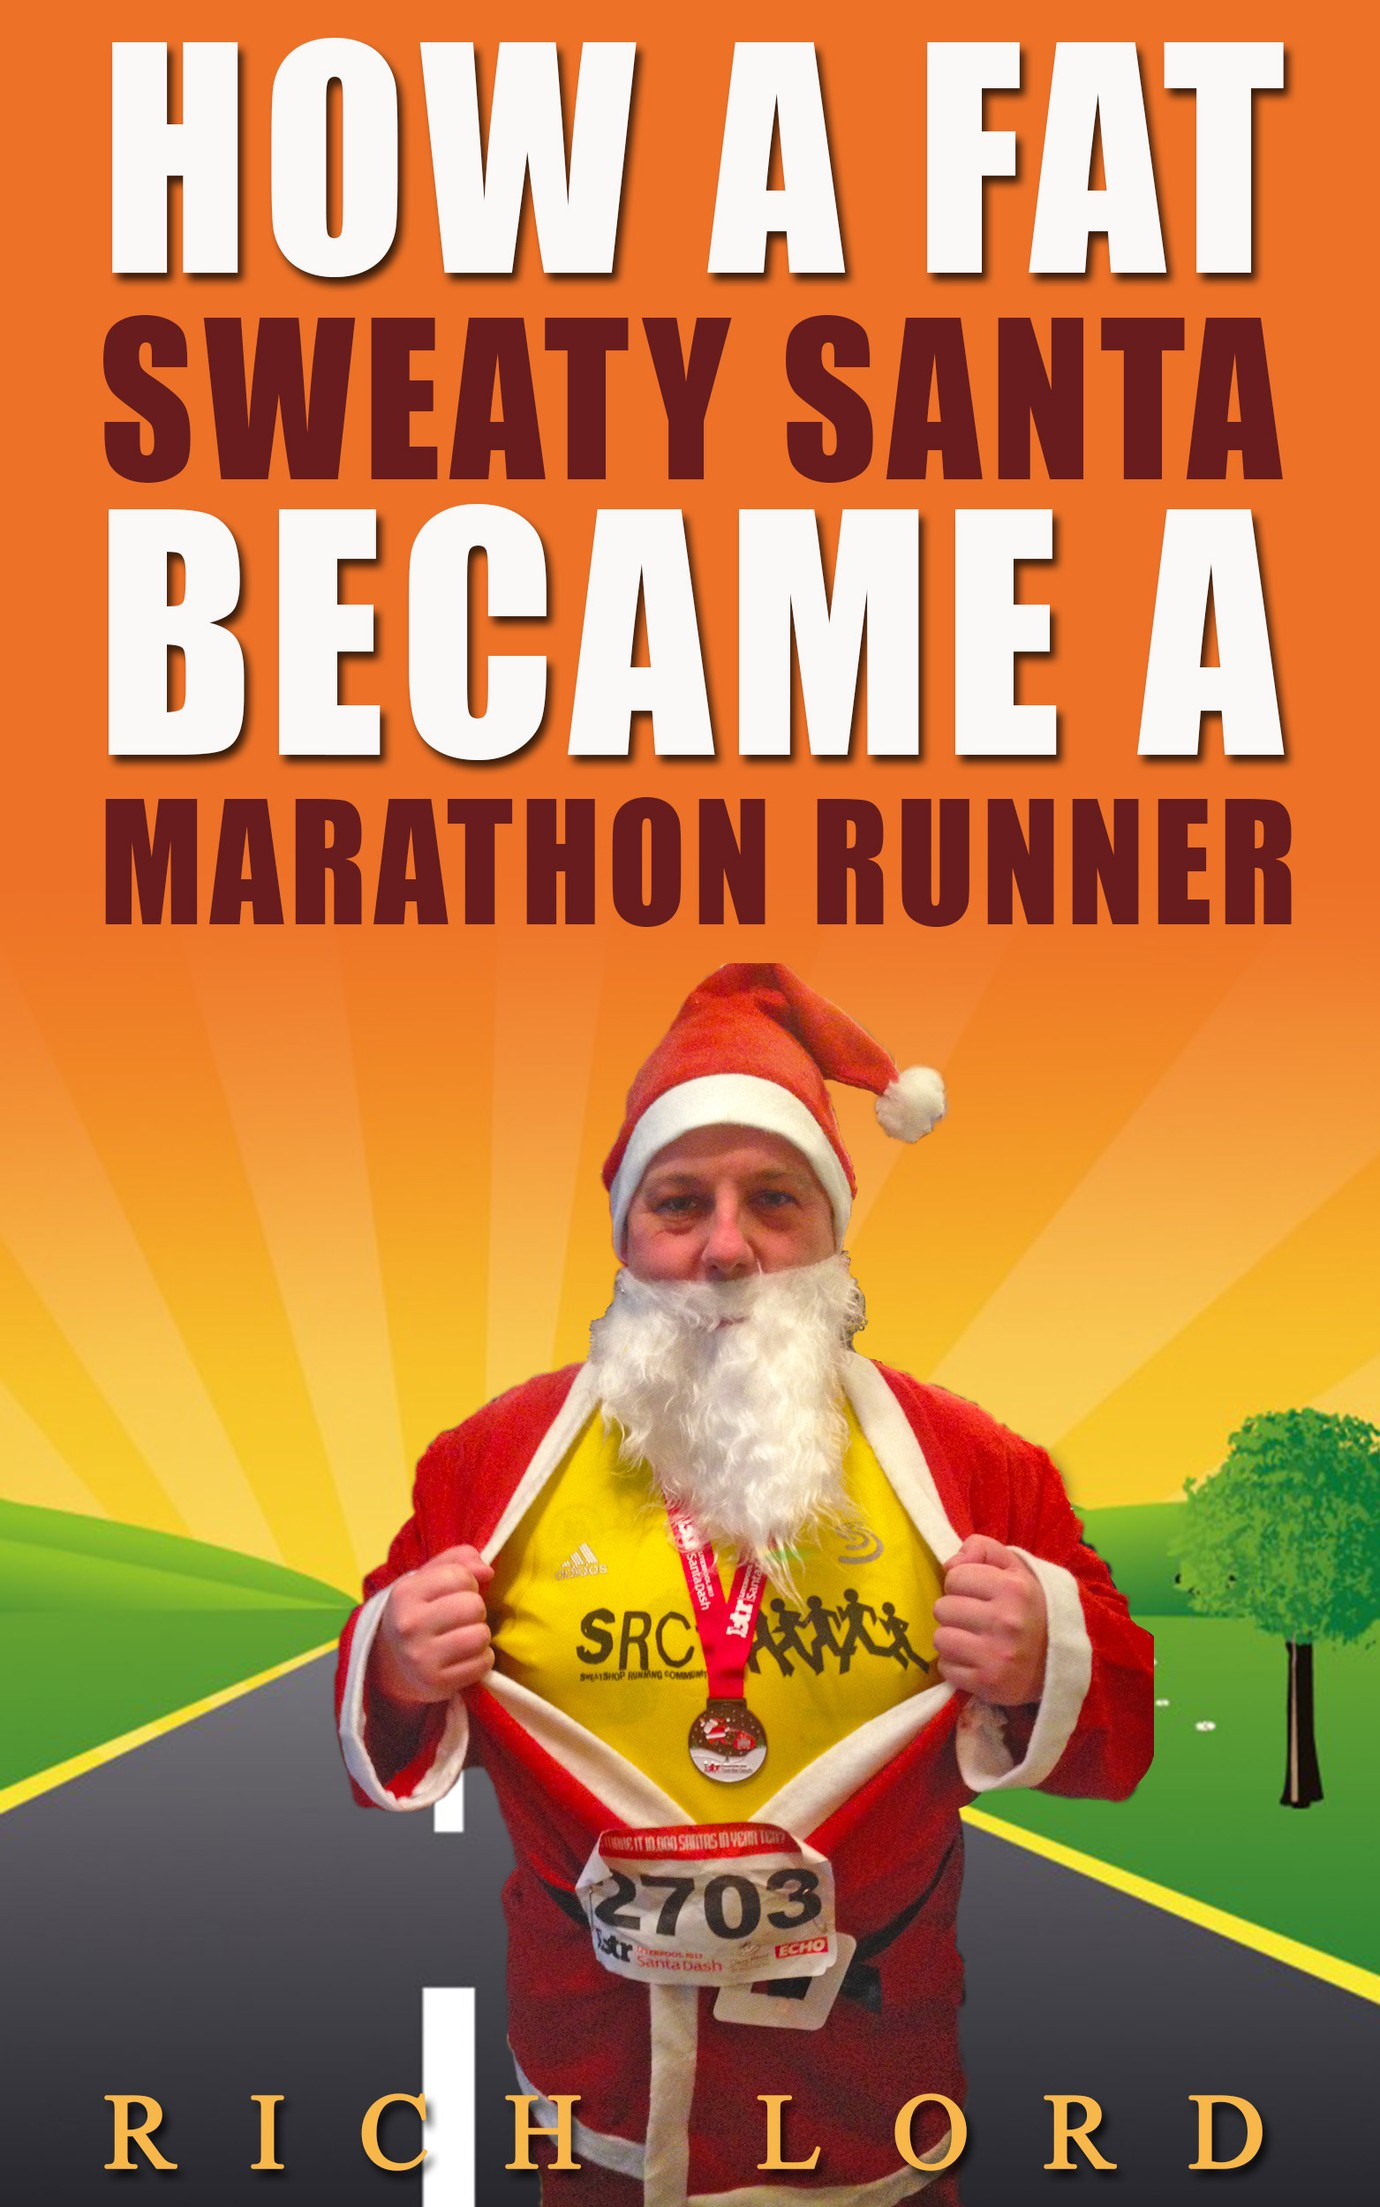 rich-lord-how-a-fat-sweaty-santa-became-a-marathon-runner